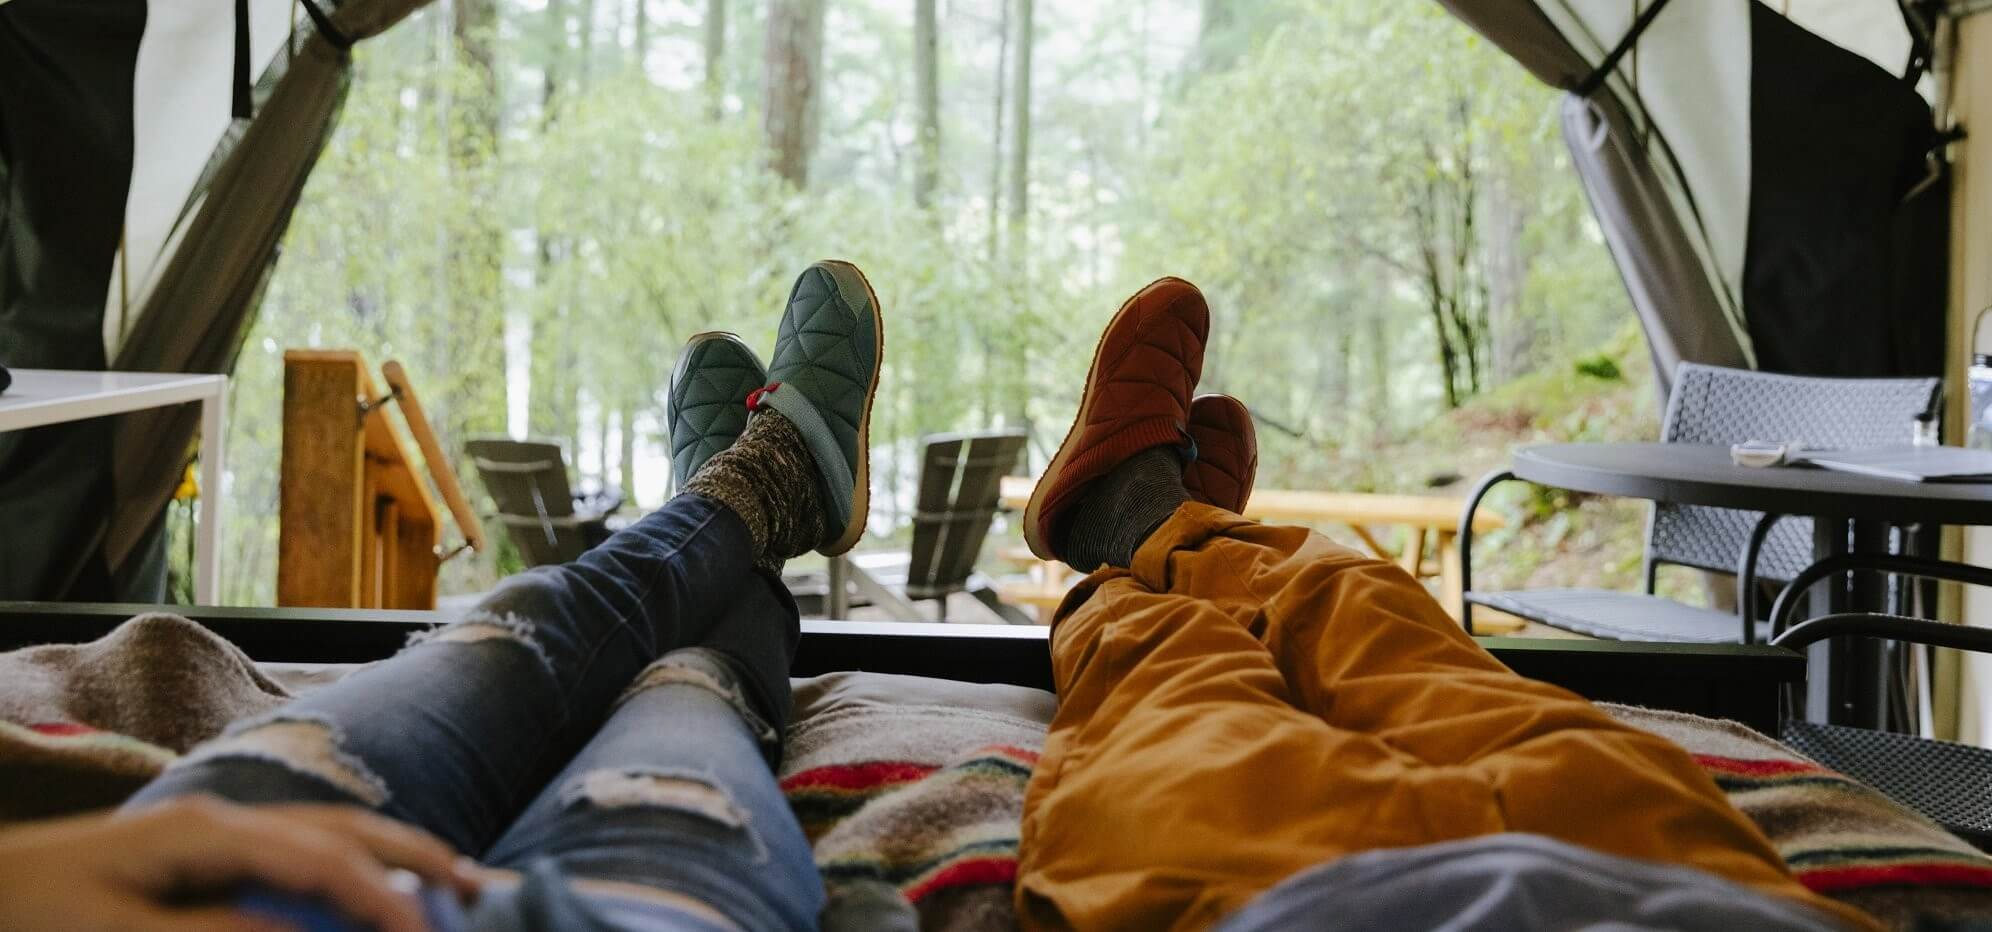 7 best camping slippers in 2021: comfy slippers to wear in and out of your tent